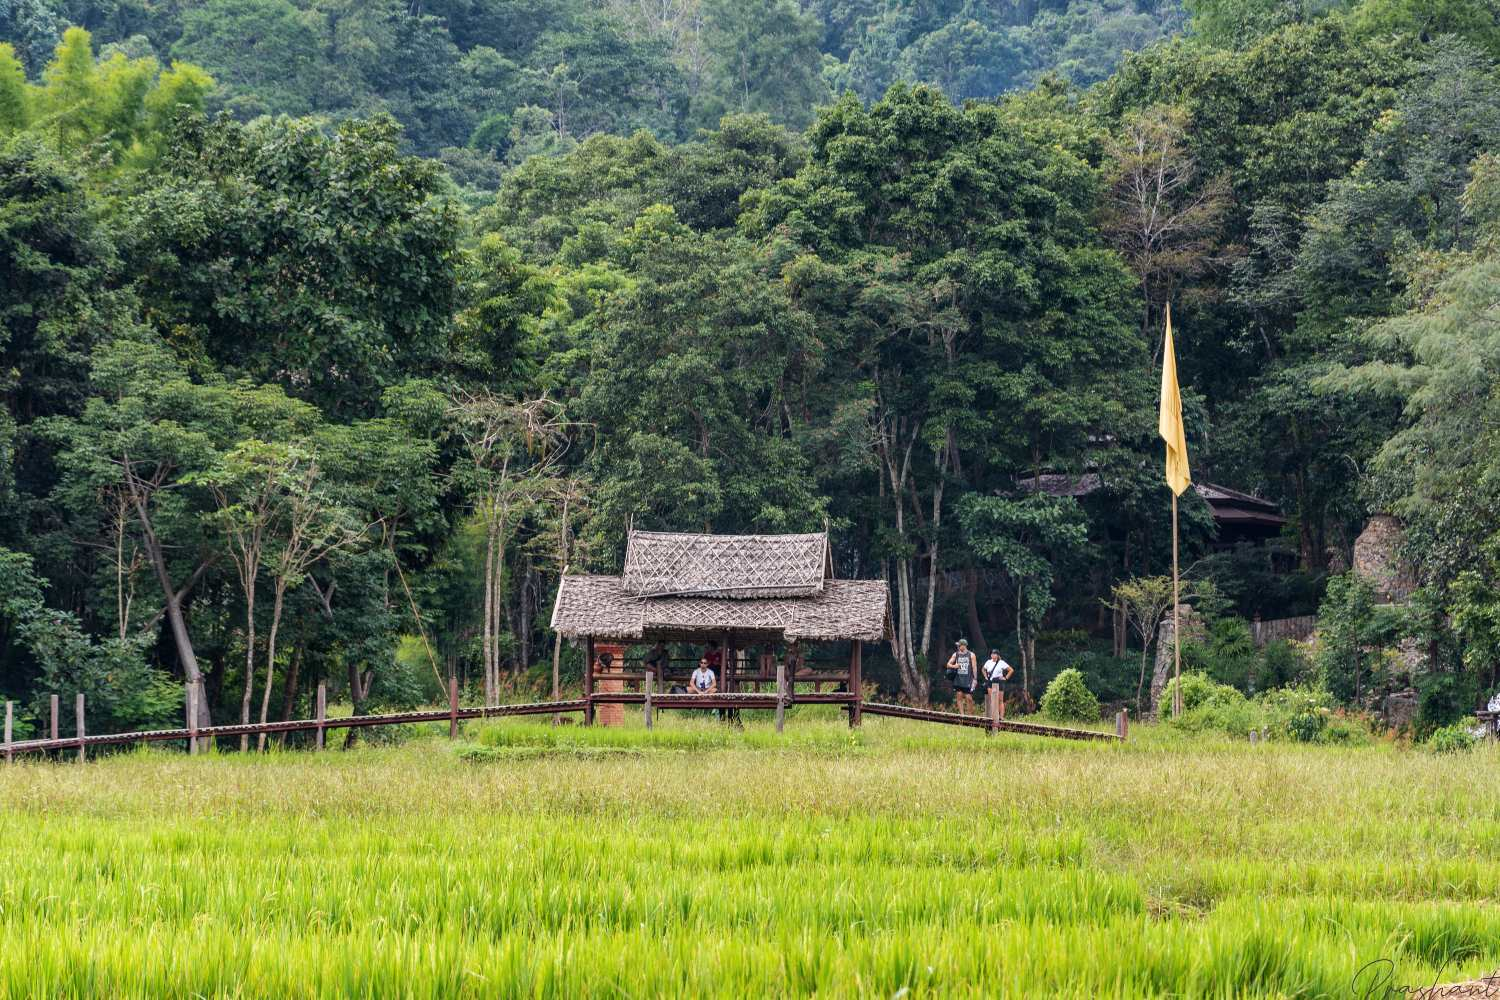 The bamboo bug over the rice fields in Pai in northern Thailand